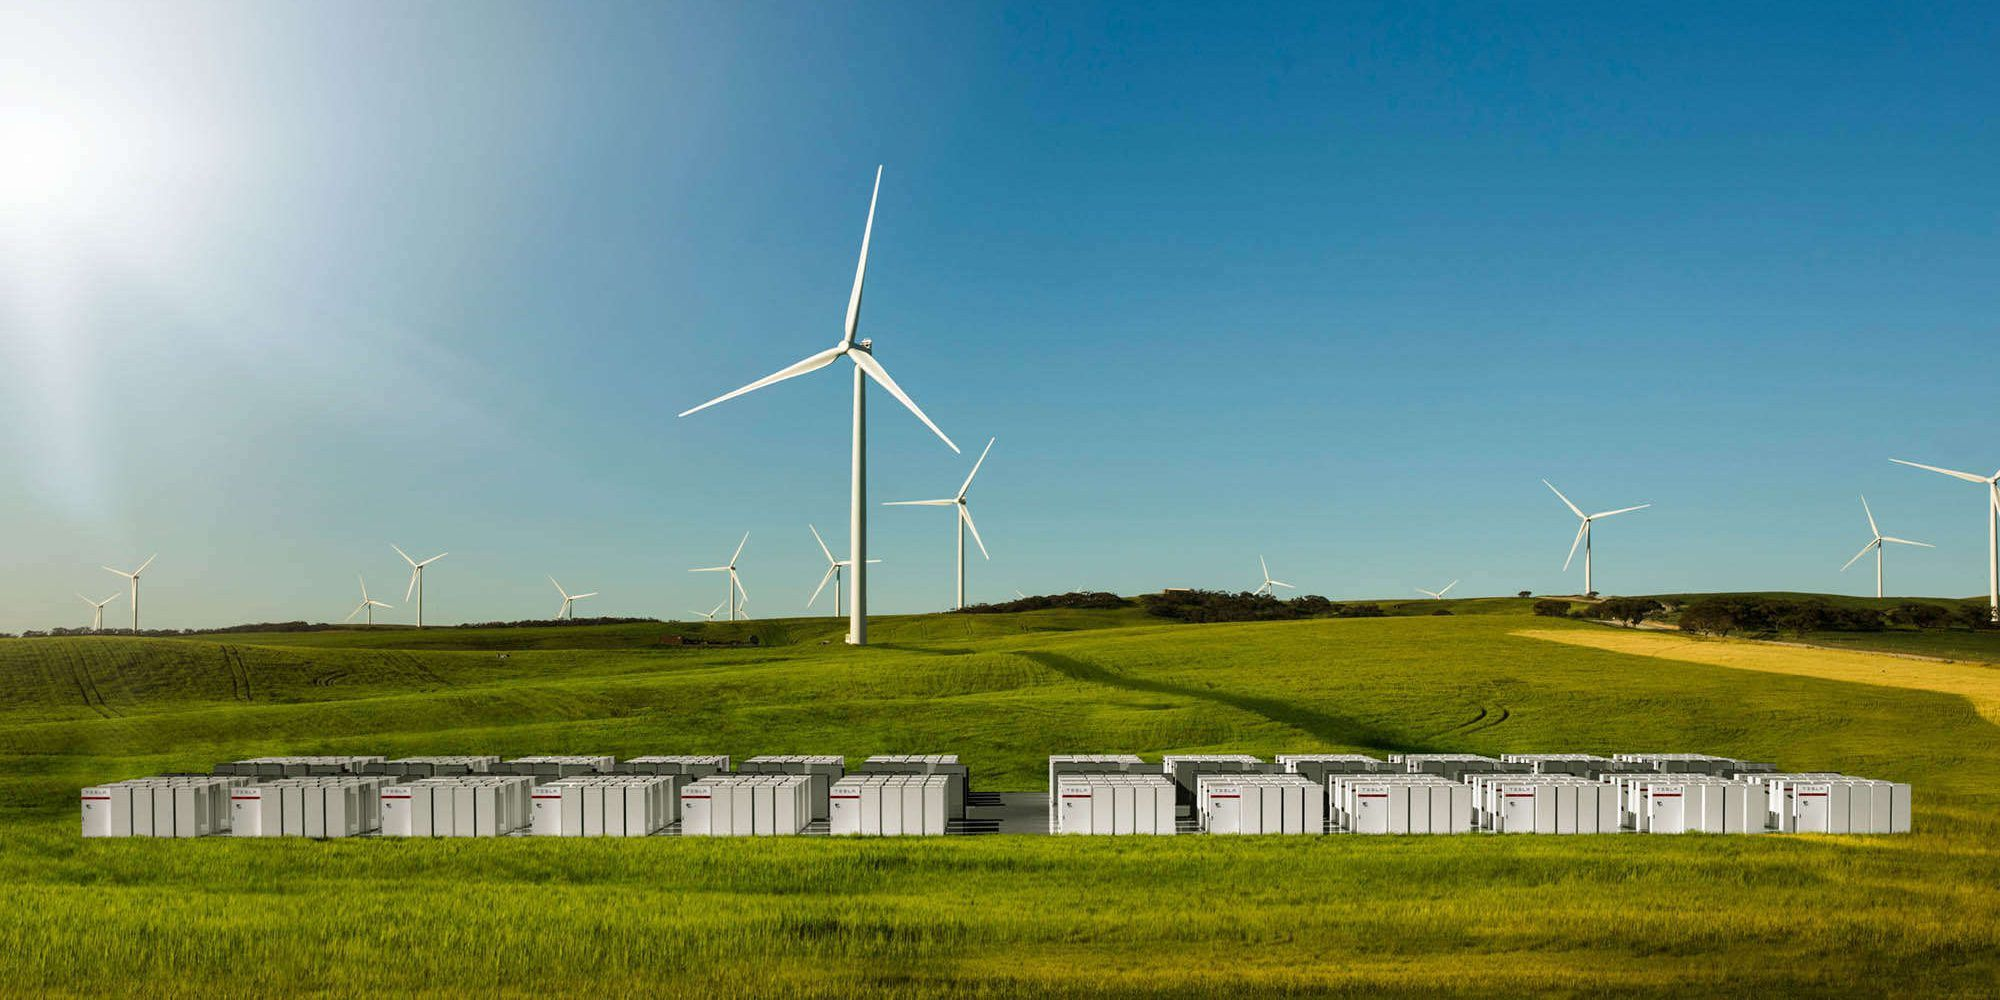 Tesla's giant battery in Australia reduced grid service cost